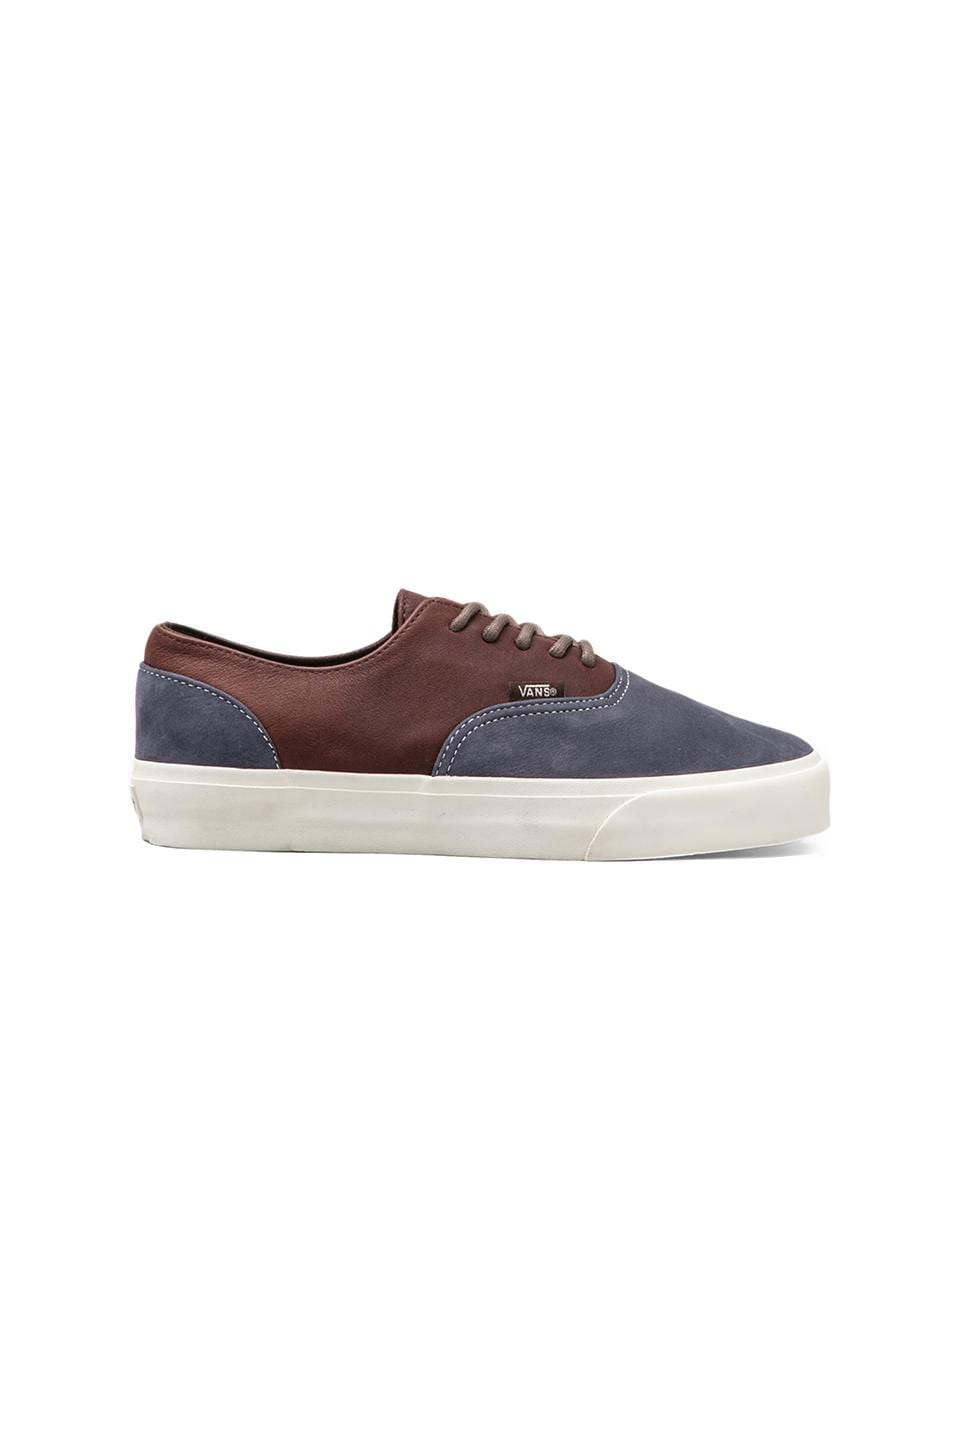 Vans California Era Decon in Blue/Chocolate Brown